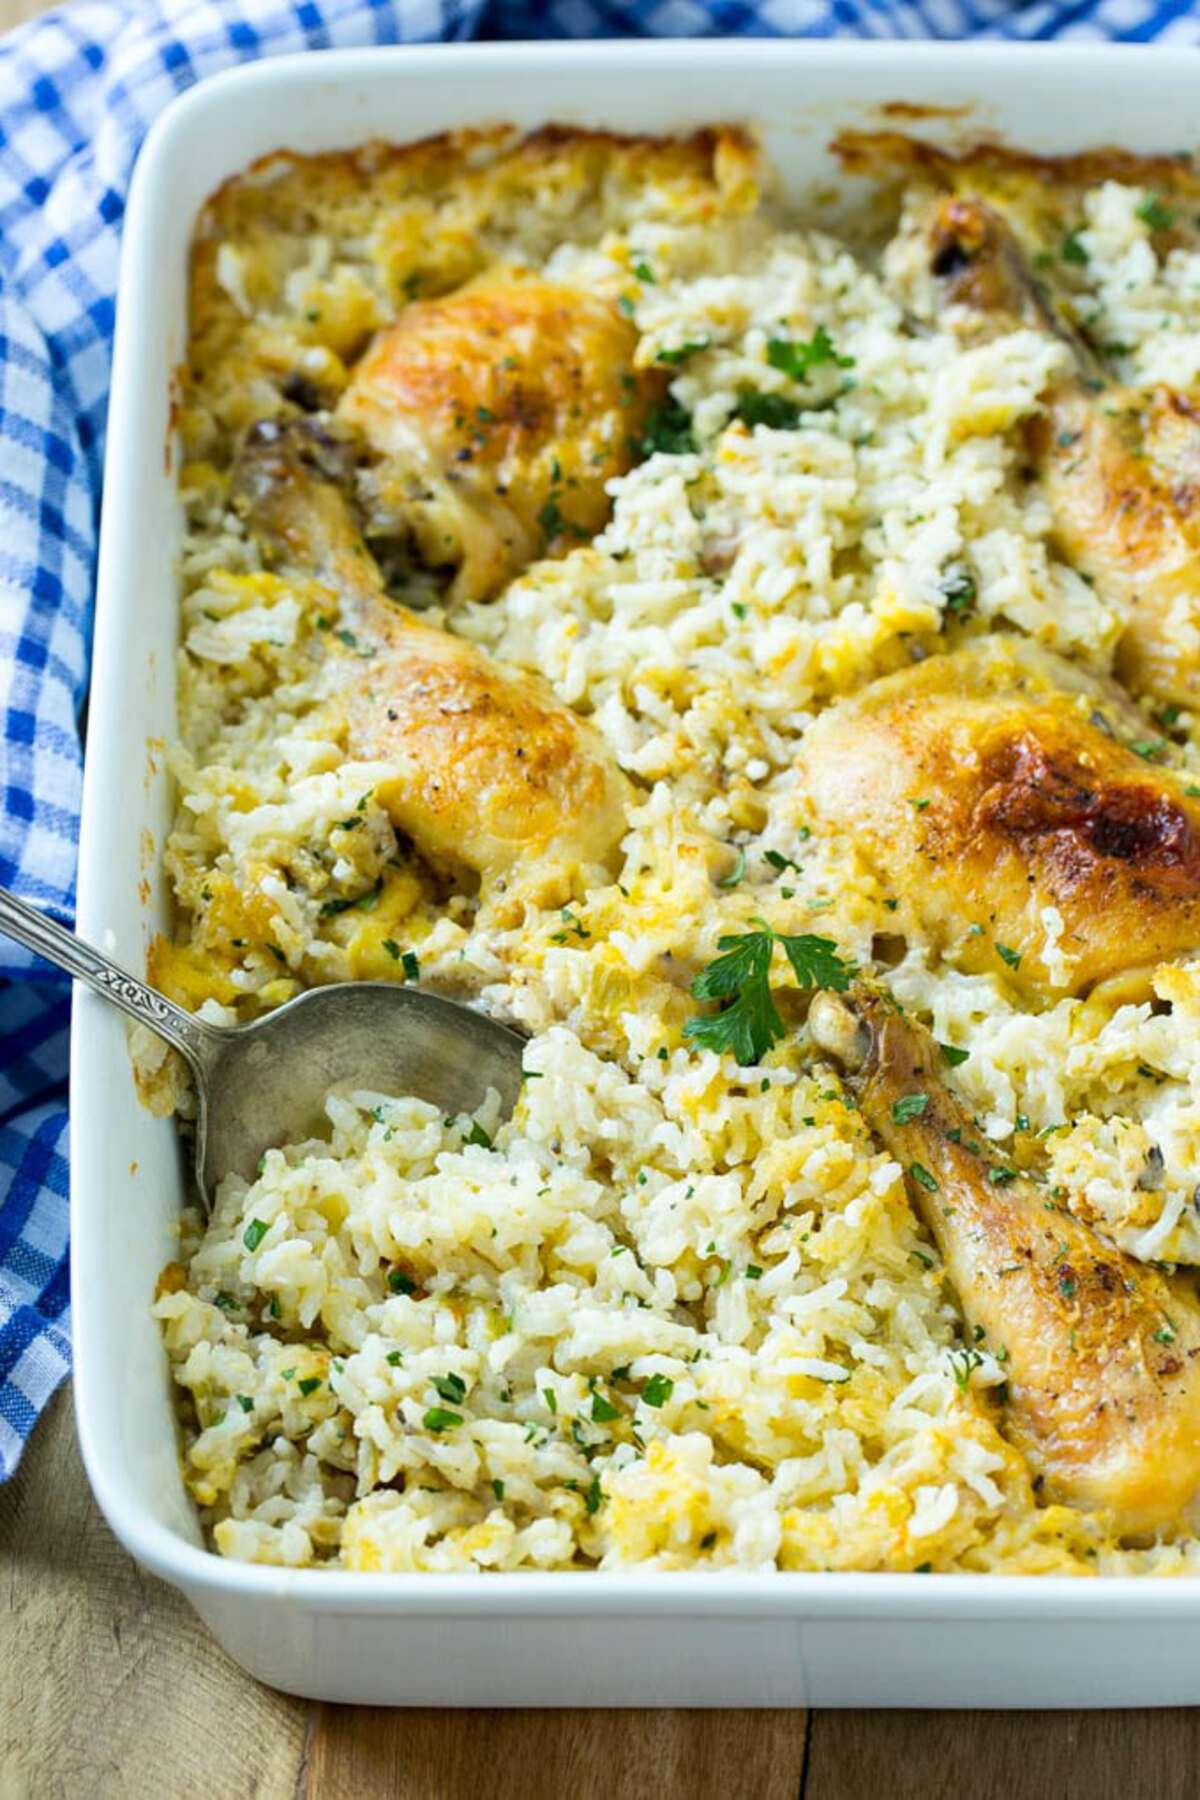 Chicken and rice in casserole dish